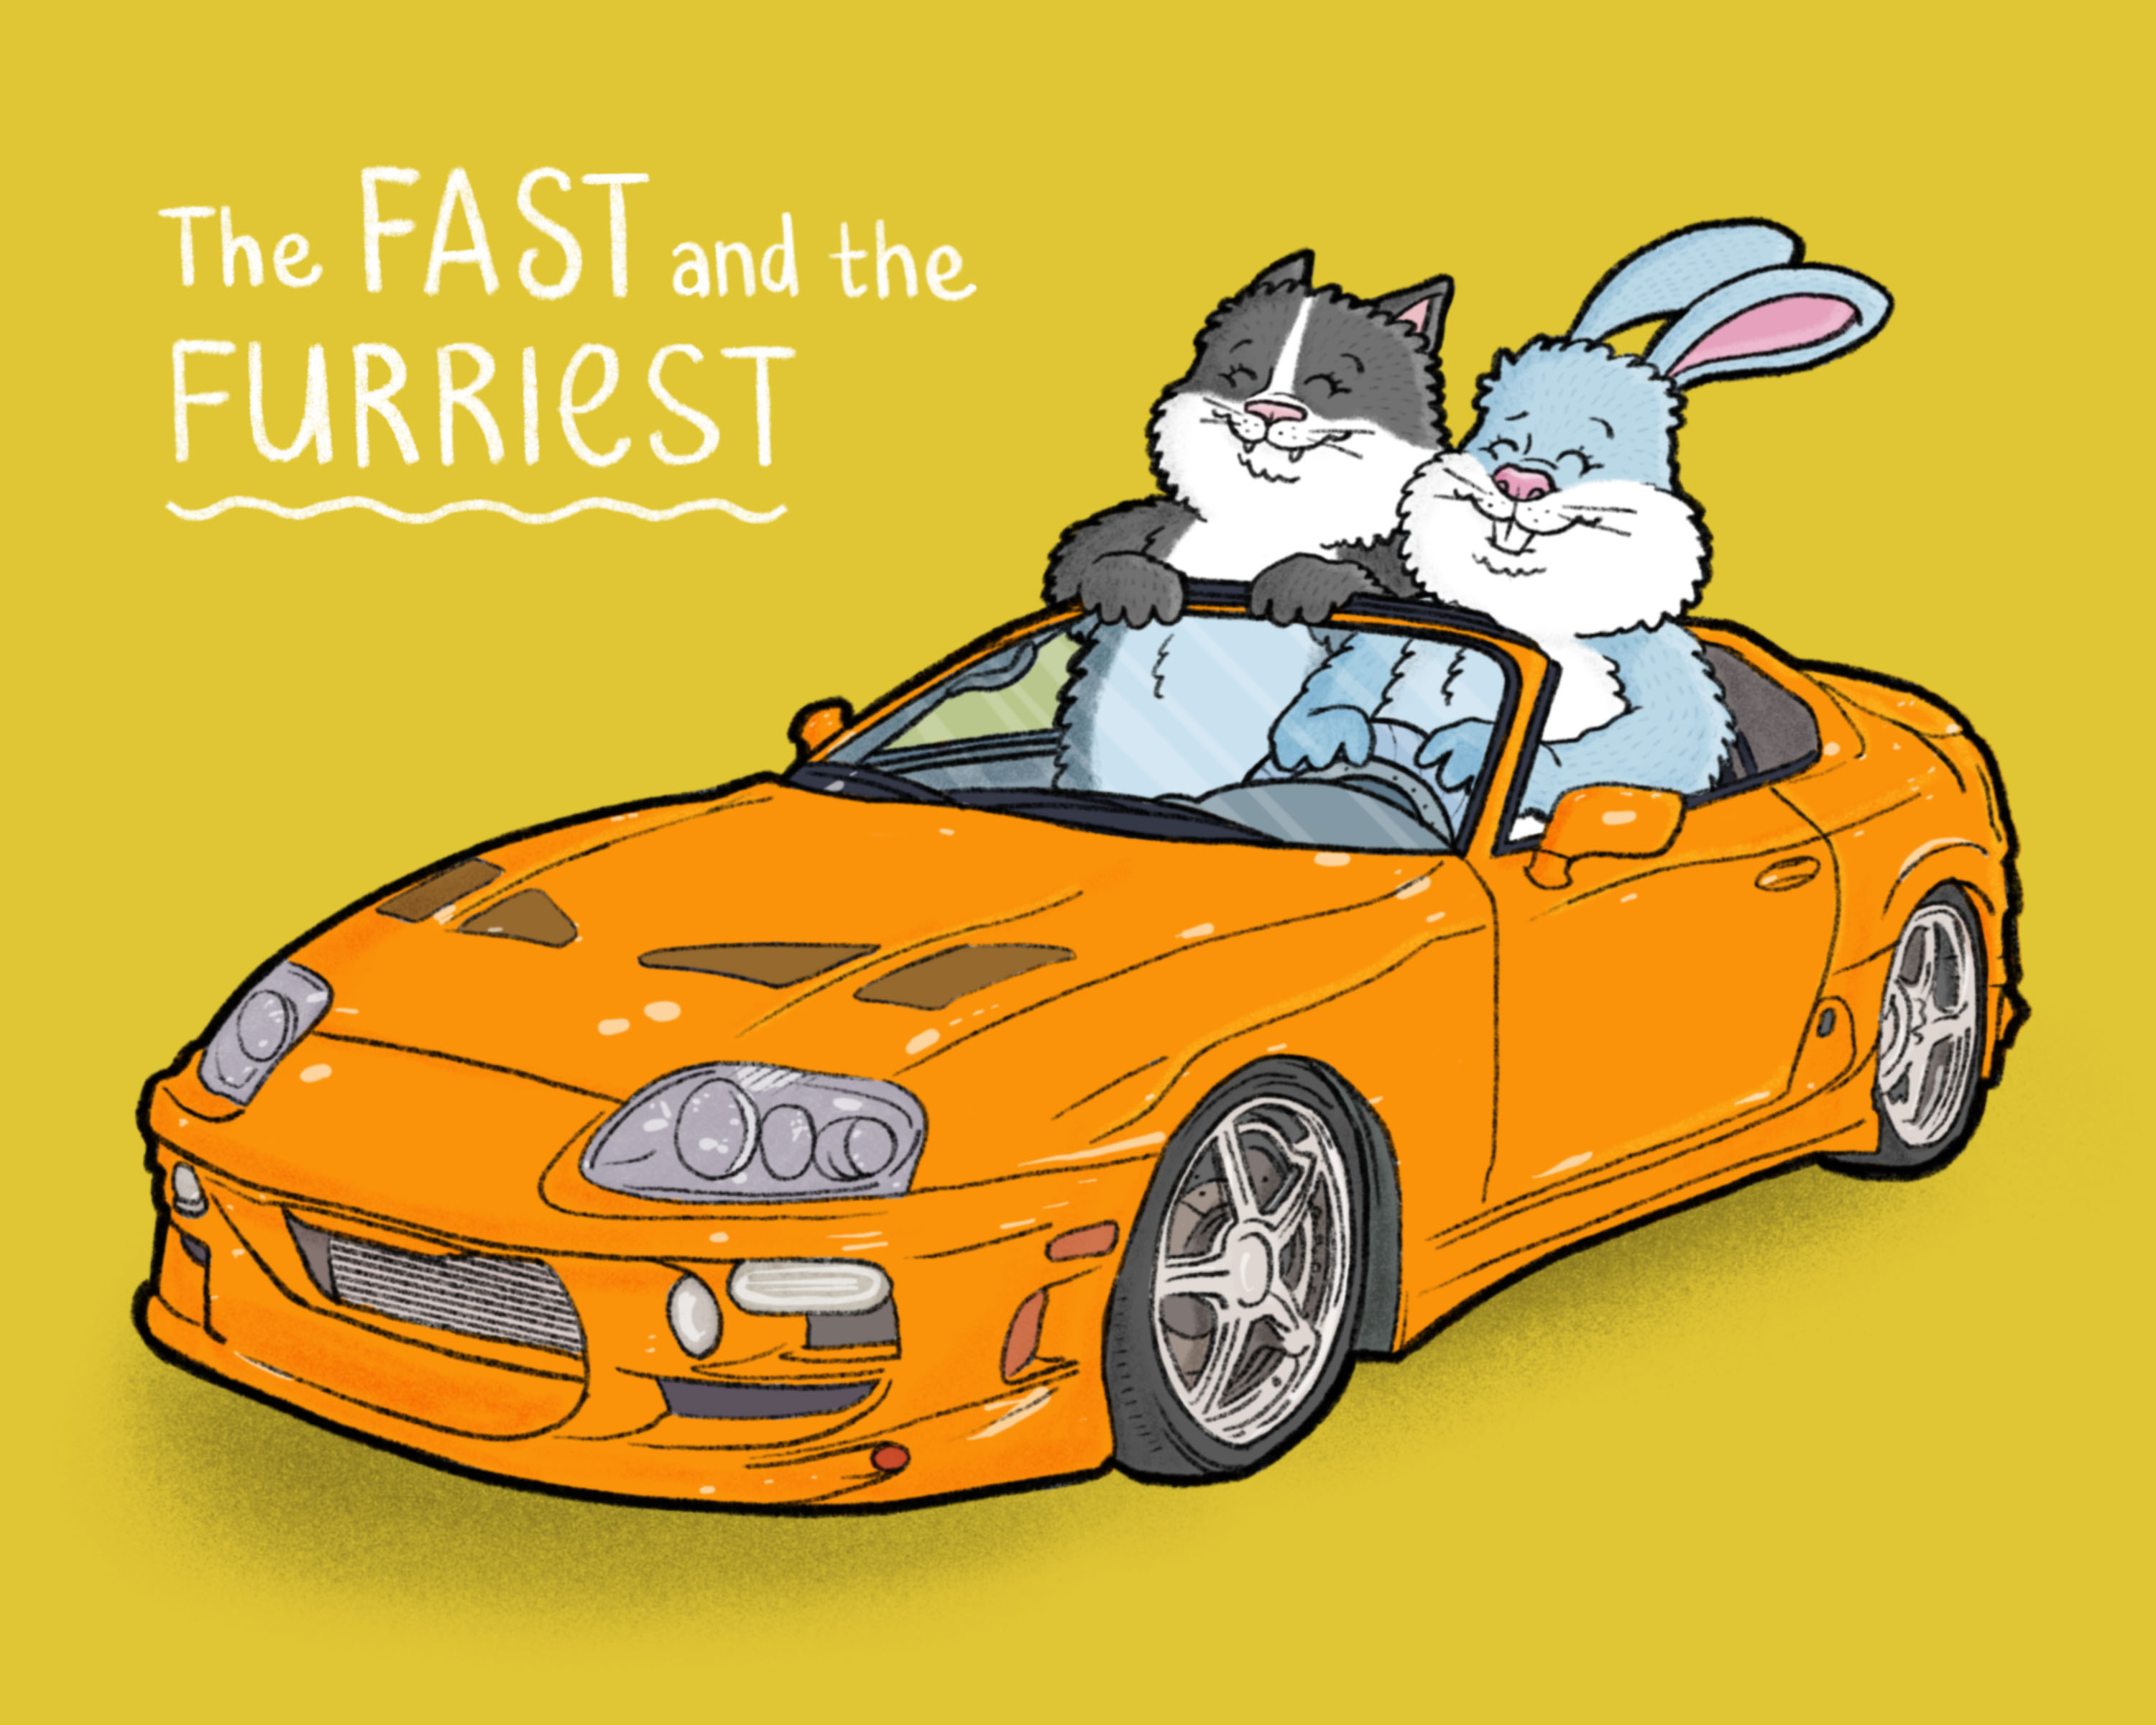 The Fast and the Furriest